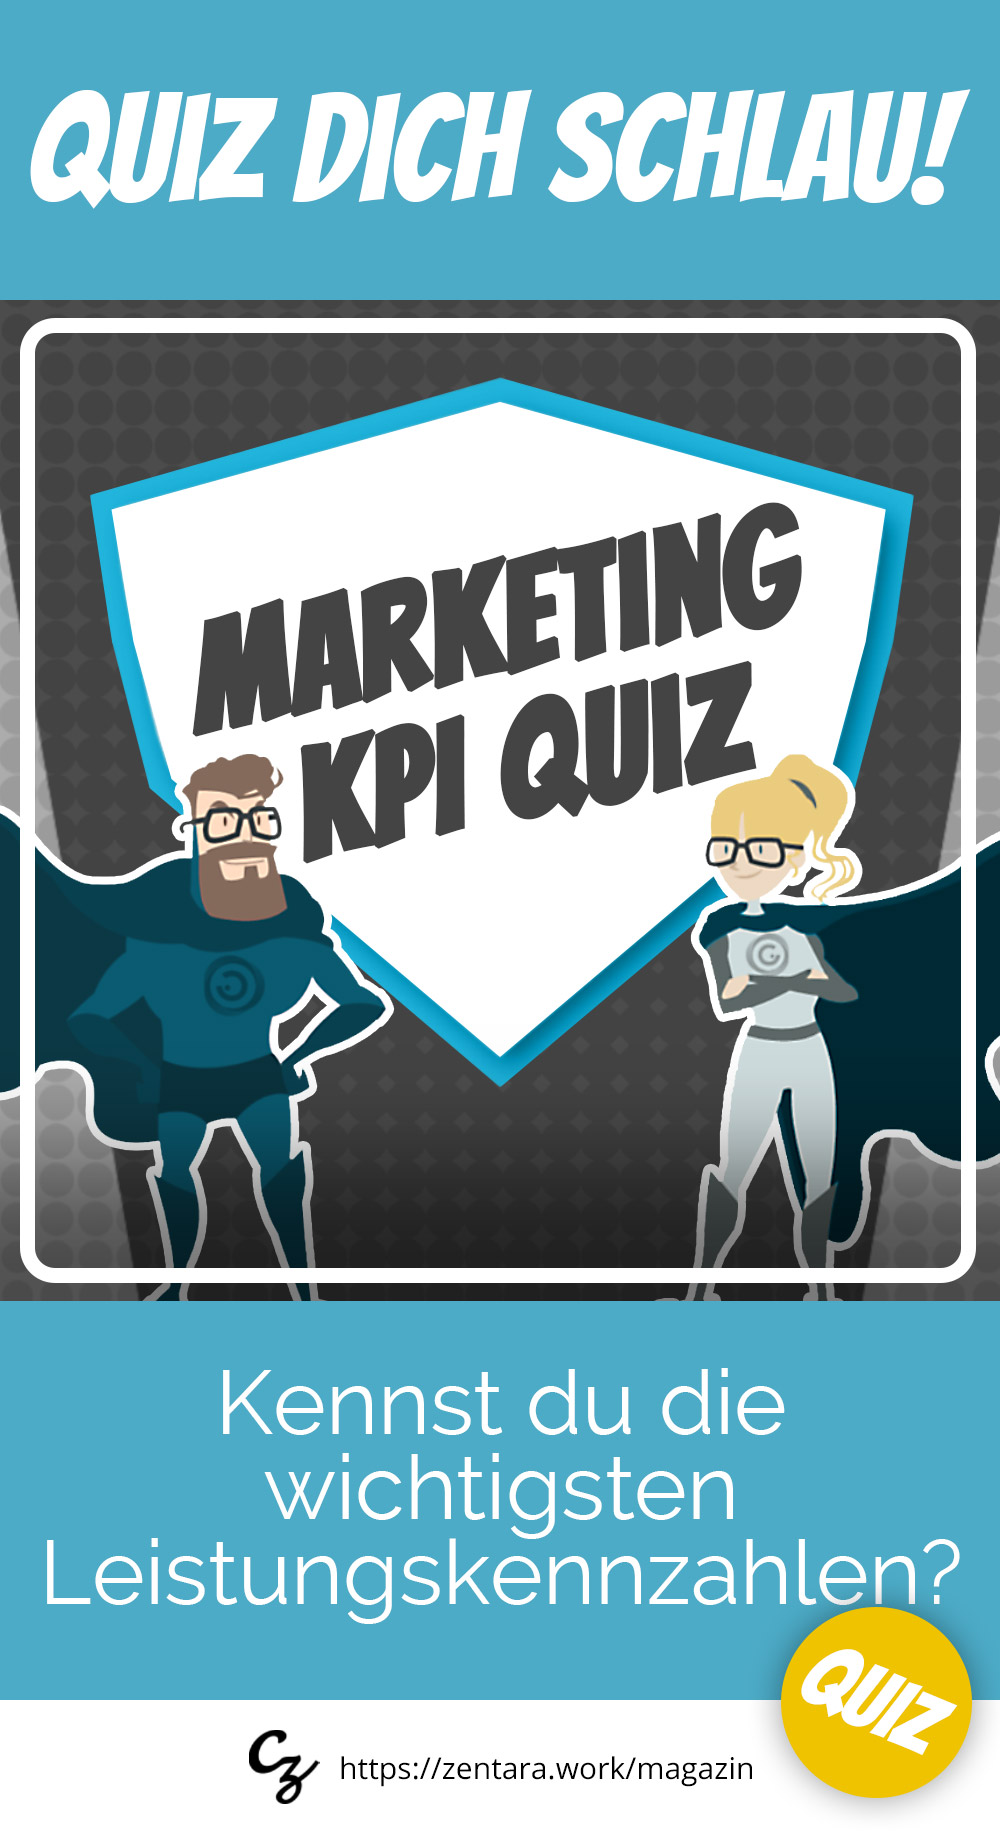 Marketing KPI Quiz: Kennst du die wichtigsten KPIs?